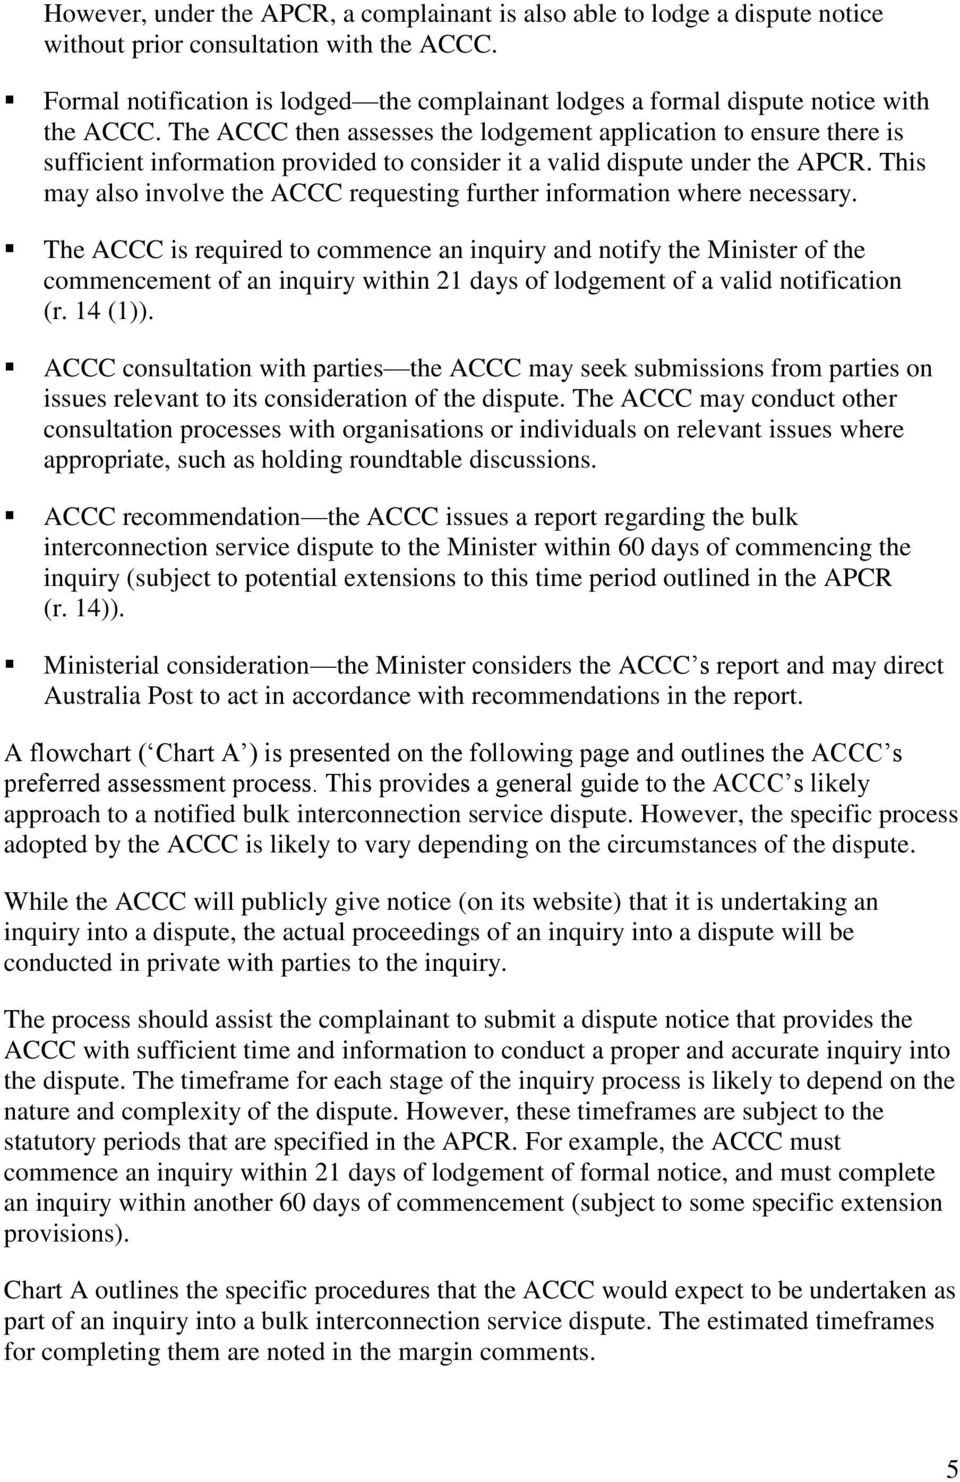 The ACCC then assesses the lodgement application to ensure there is sufficient information provided to consider it a valid dispute under the APCR.